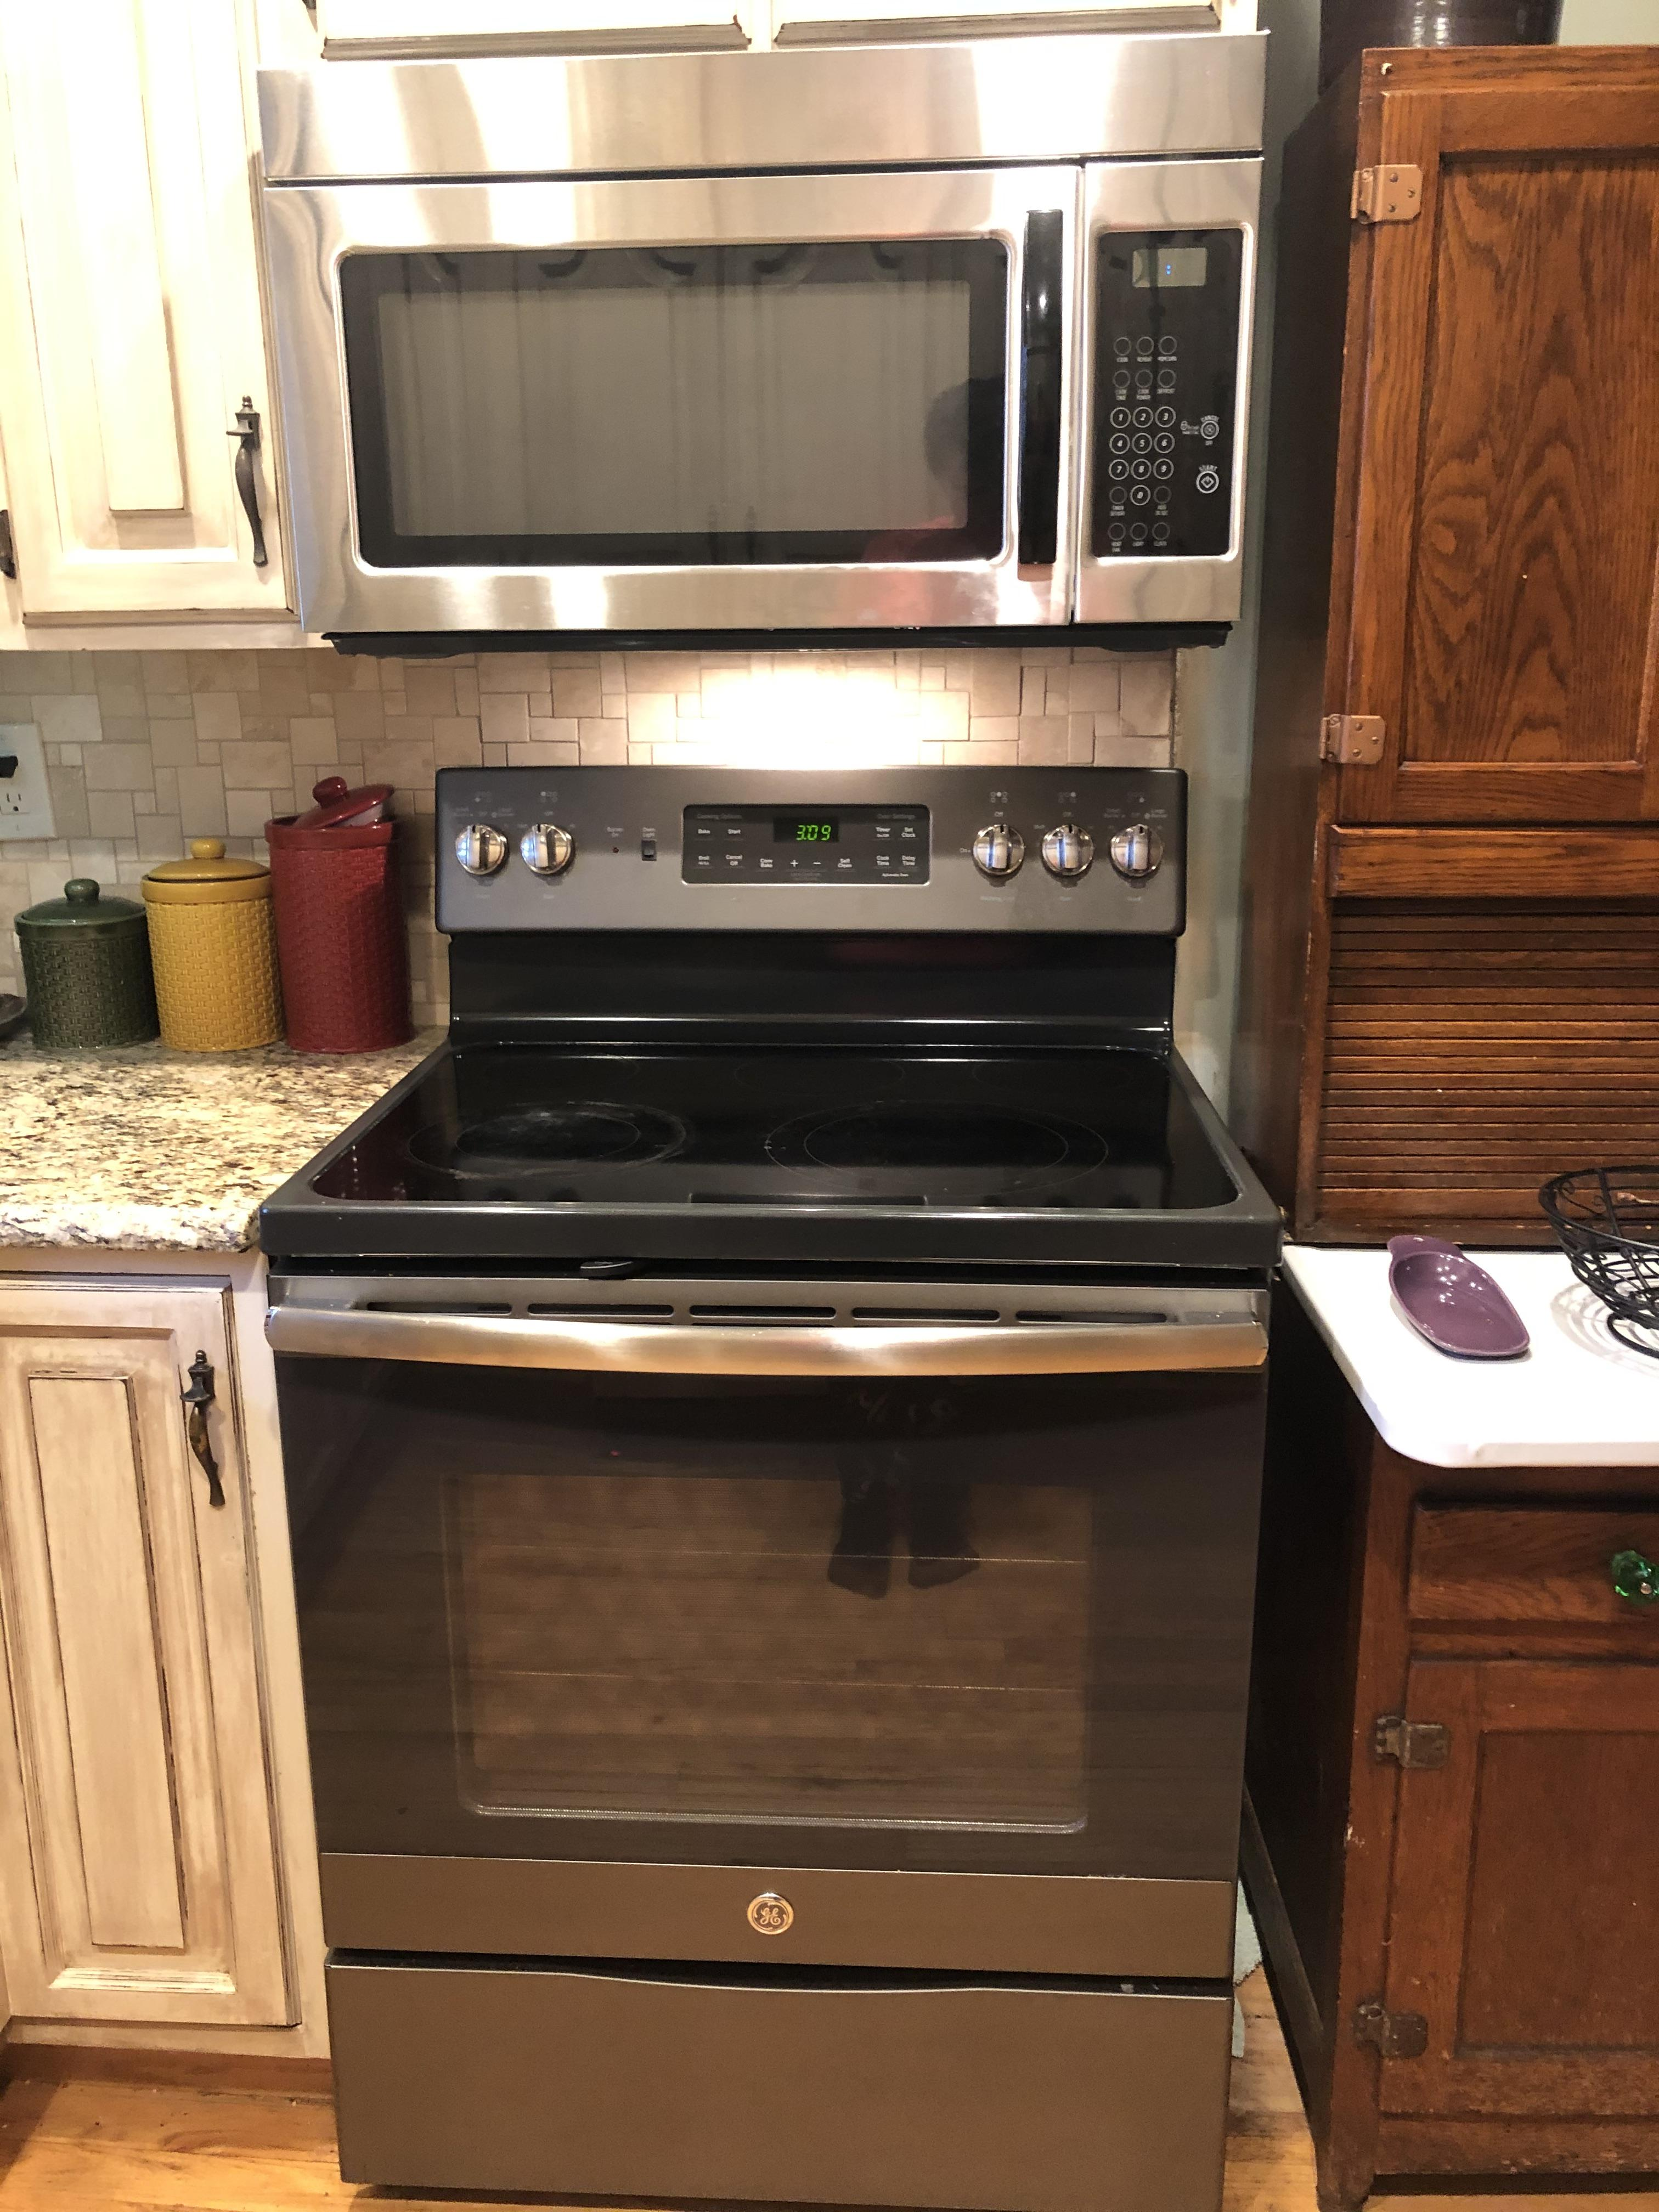 Convection oven, microwave, hoosier